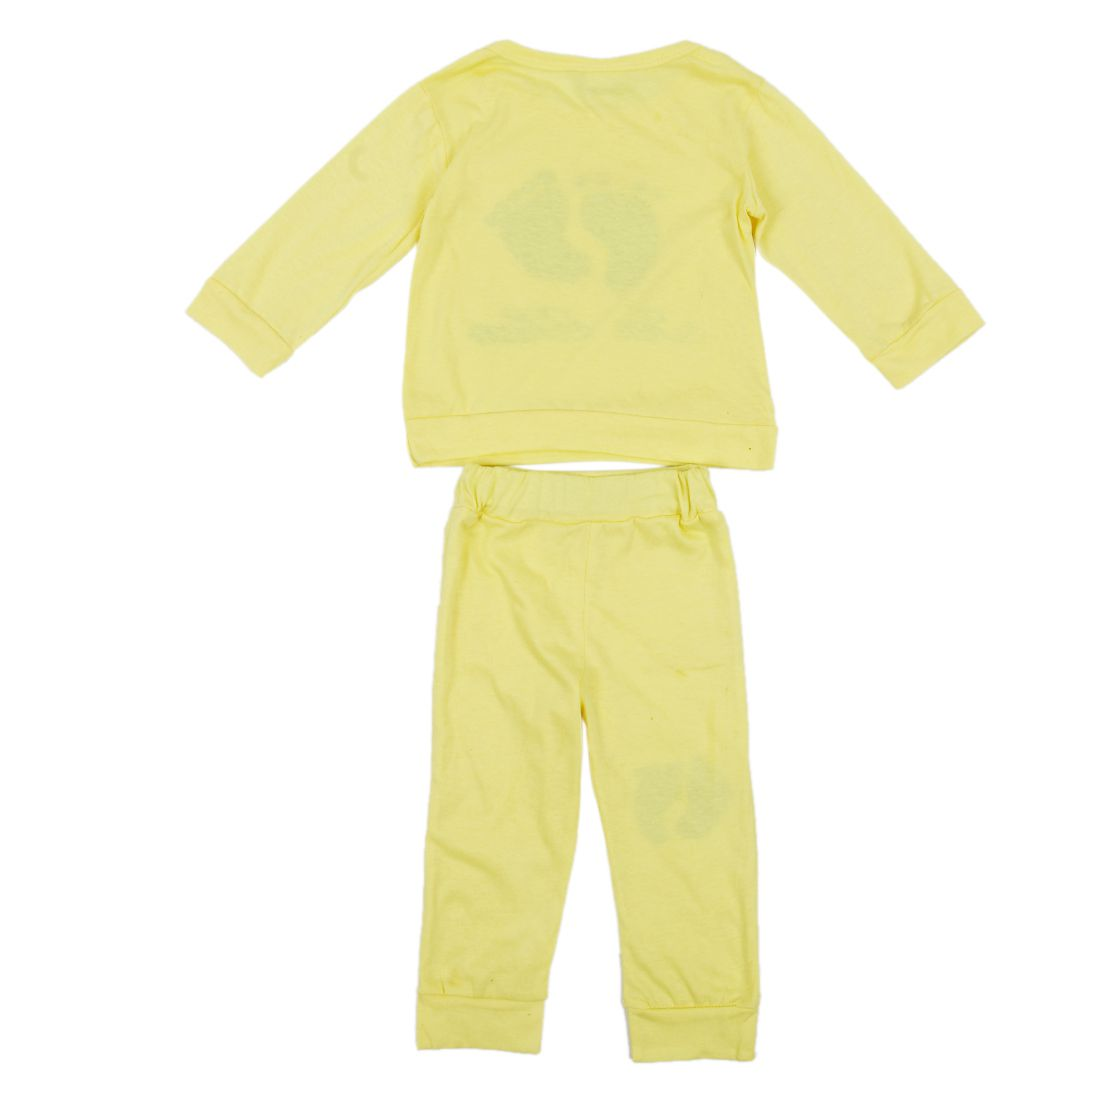 HOT SALE High Quality 100% Cotton baby clothing set,Toddlers children set,baby boys girls 2 pcs Footprints ,Hot sale-Yellow,80